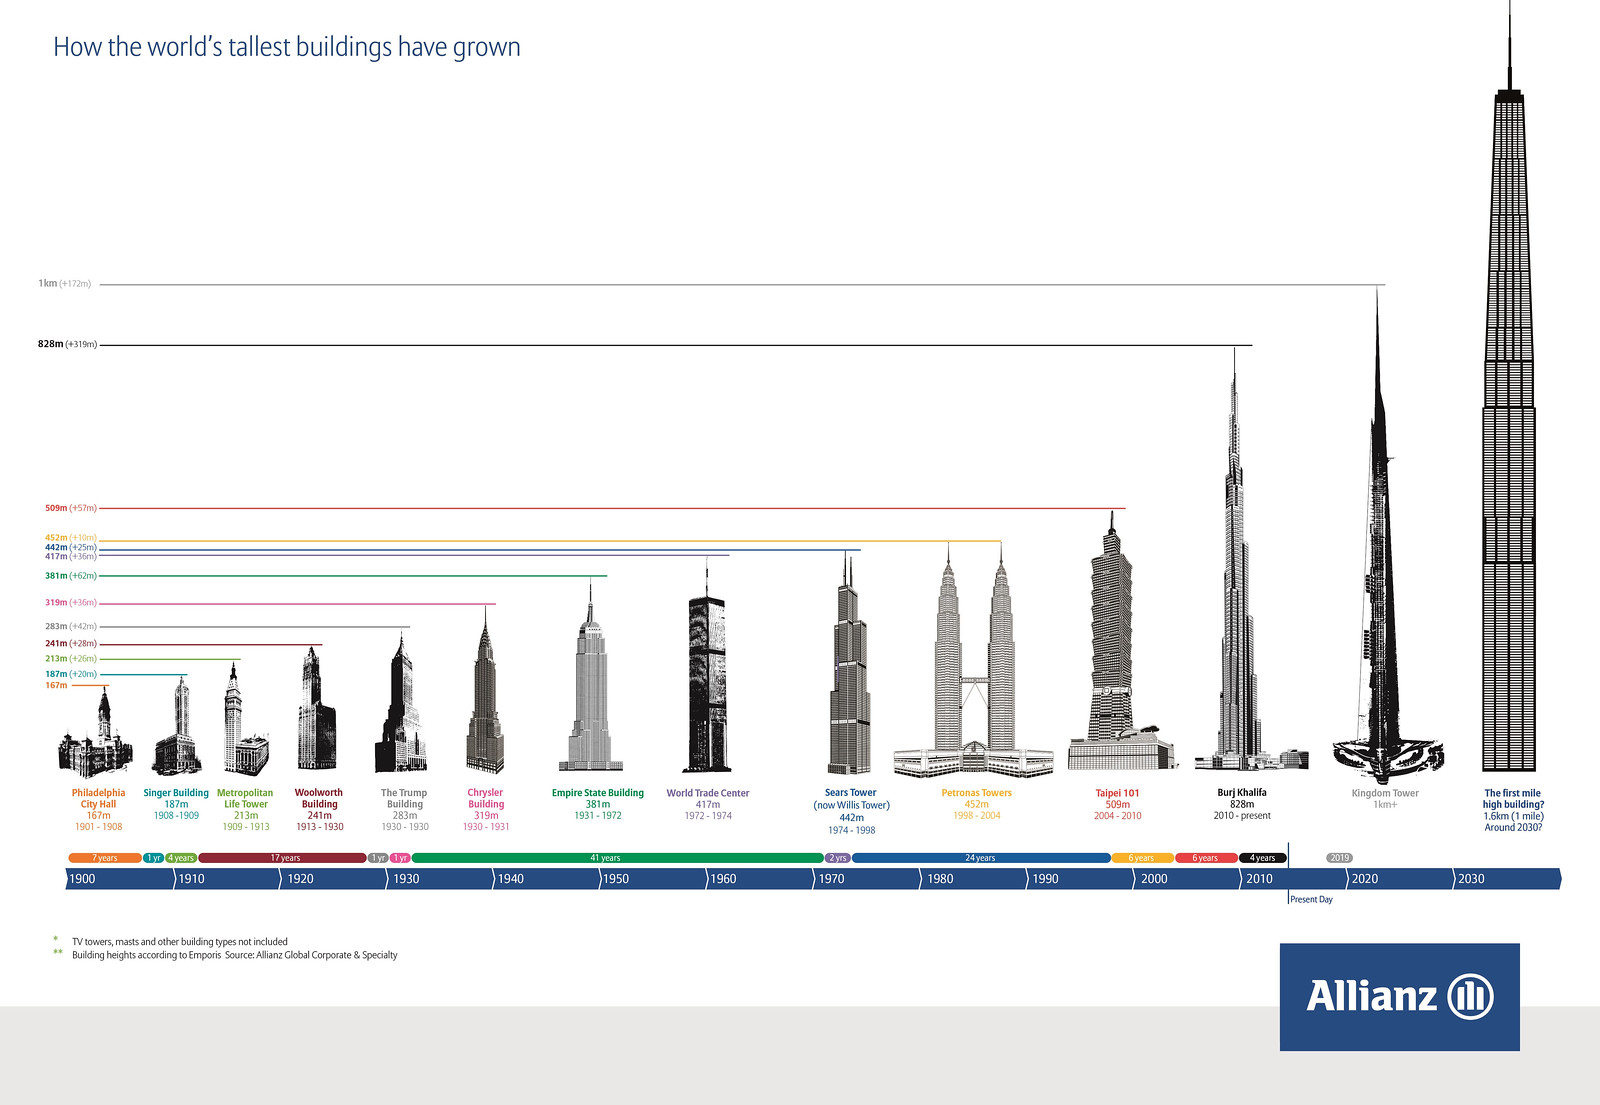 JEDDAH | Jeddah Tower | 1000m+ | 3281ft+ | 167 fl | On Hold